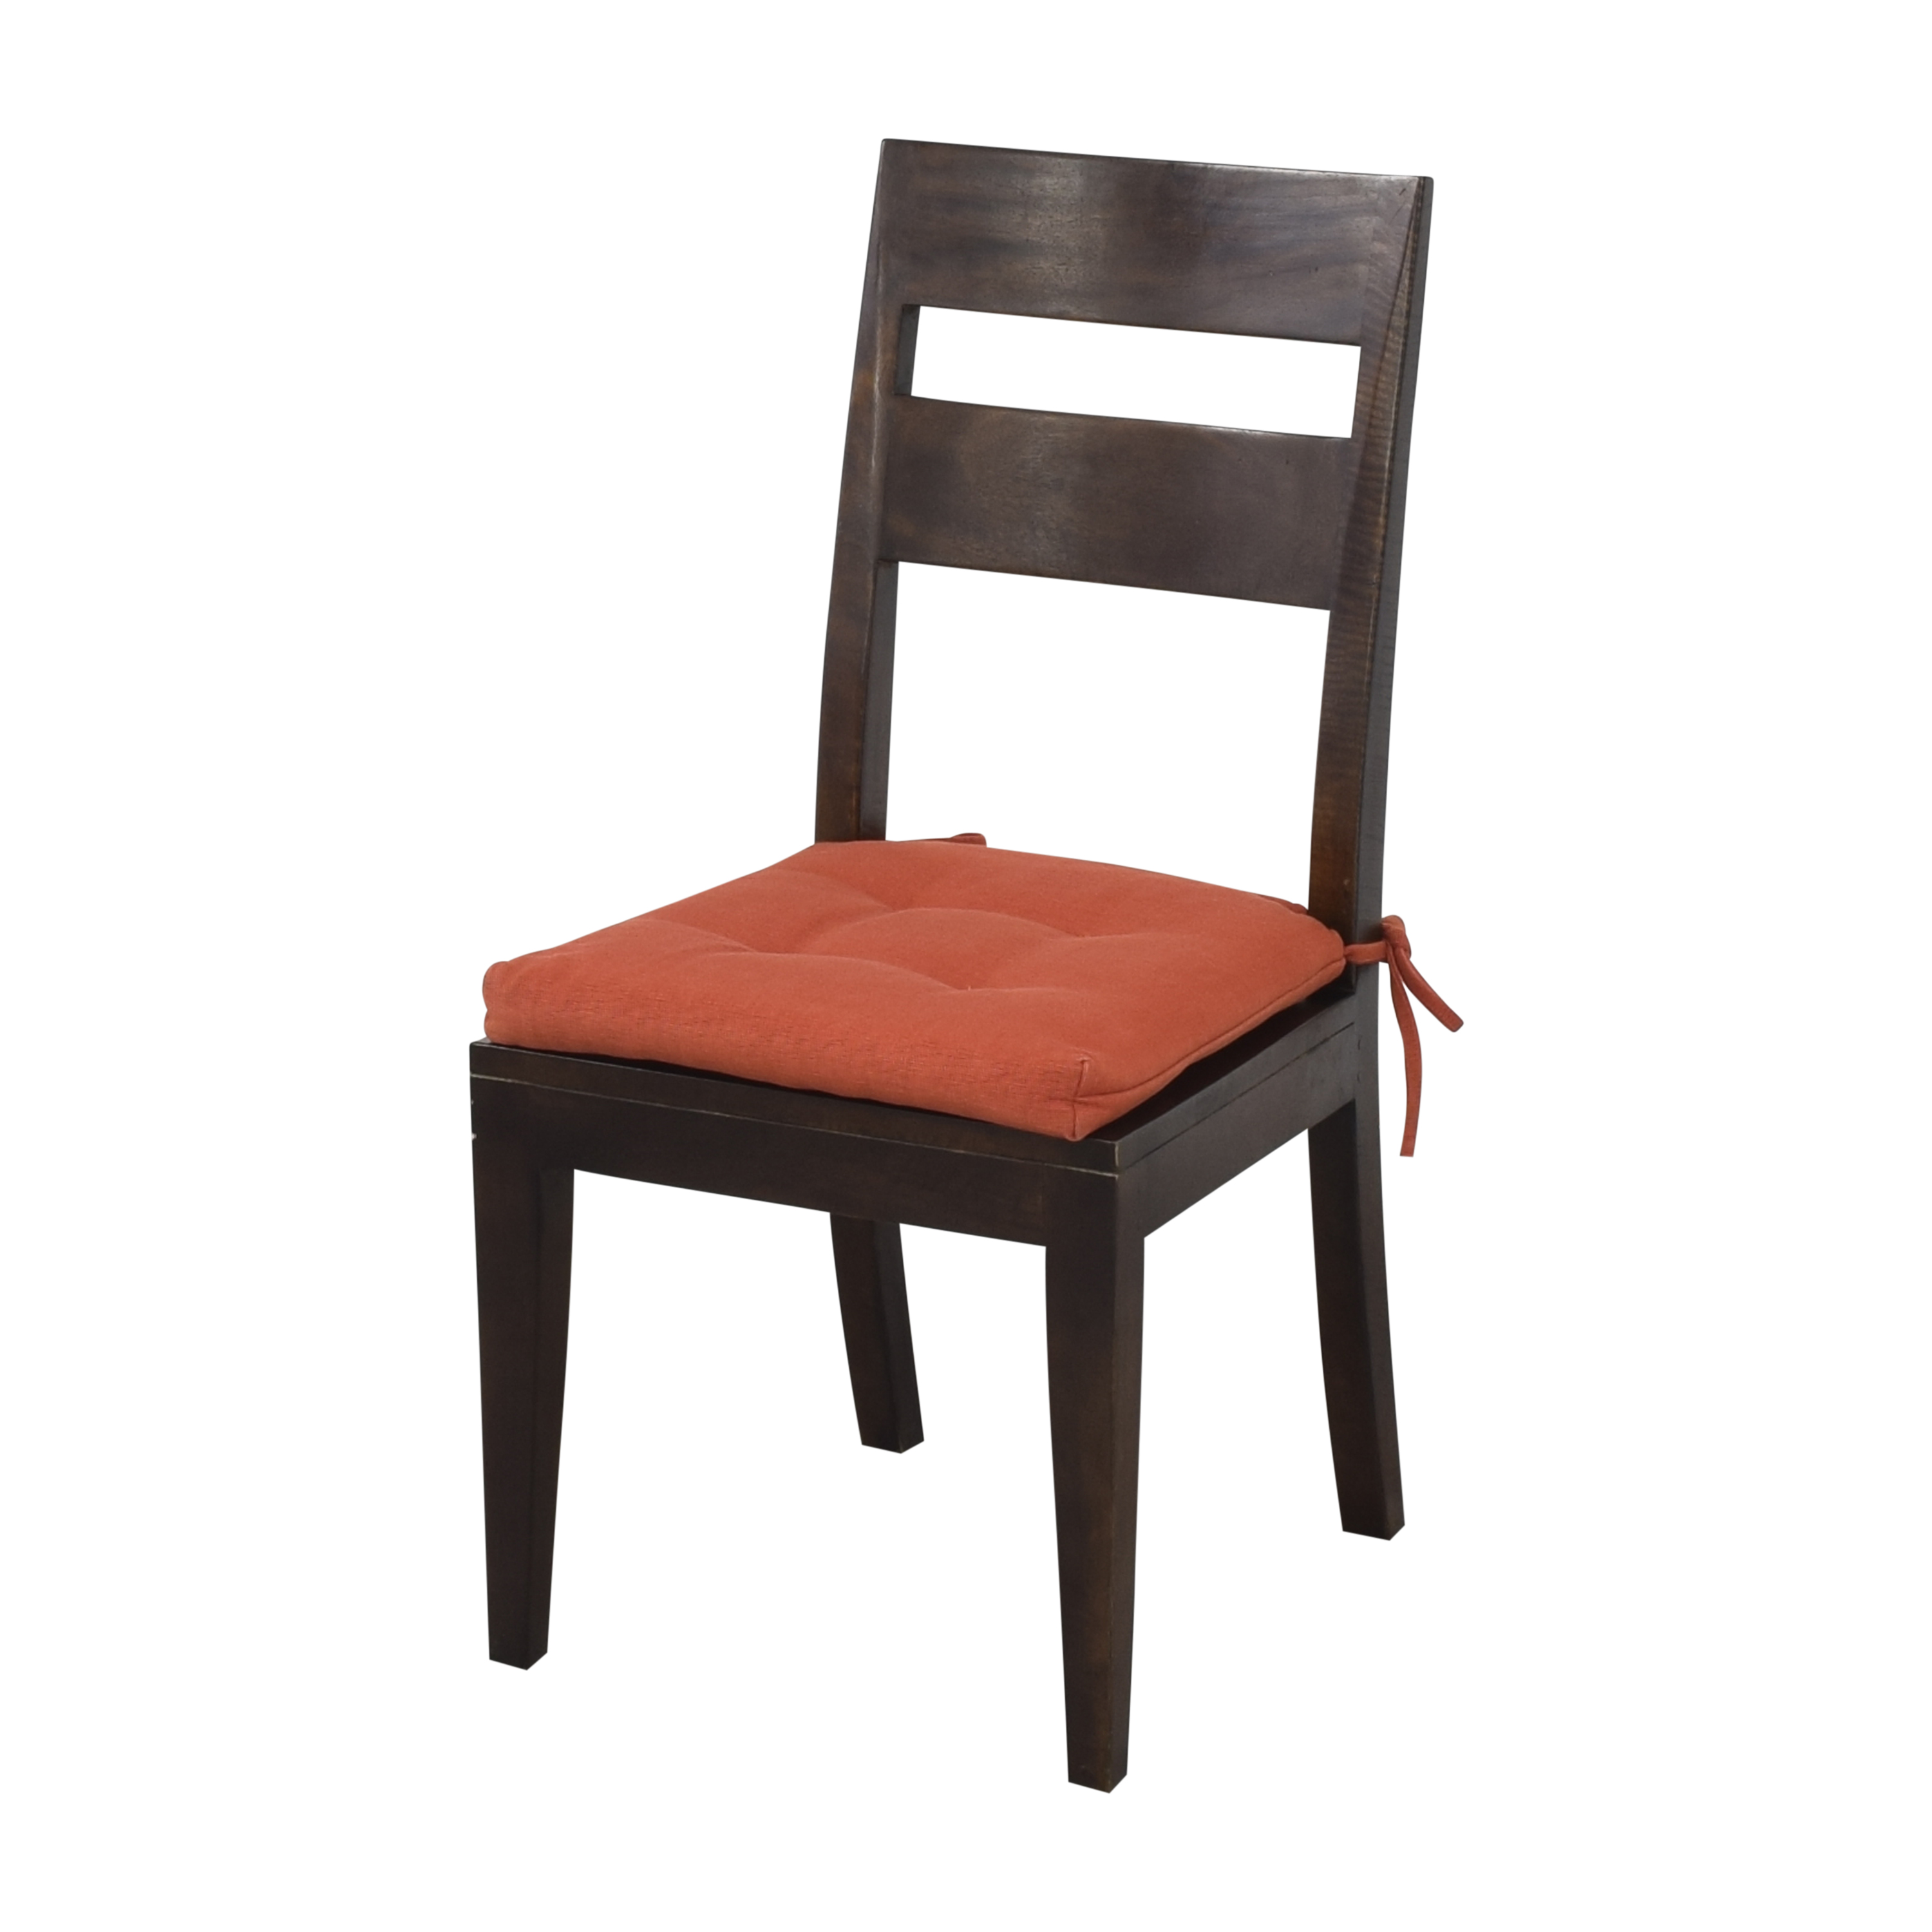 buy Crate & Barrel Crate & Barrel Basque Dining Side Chairs online